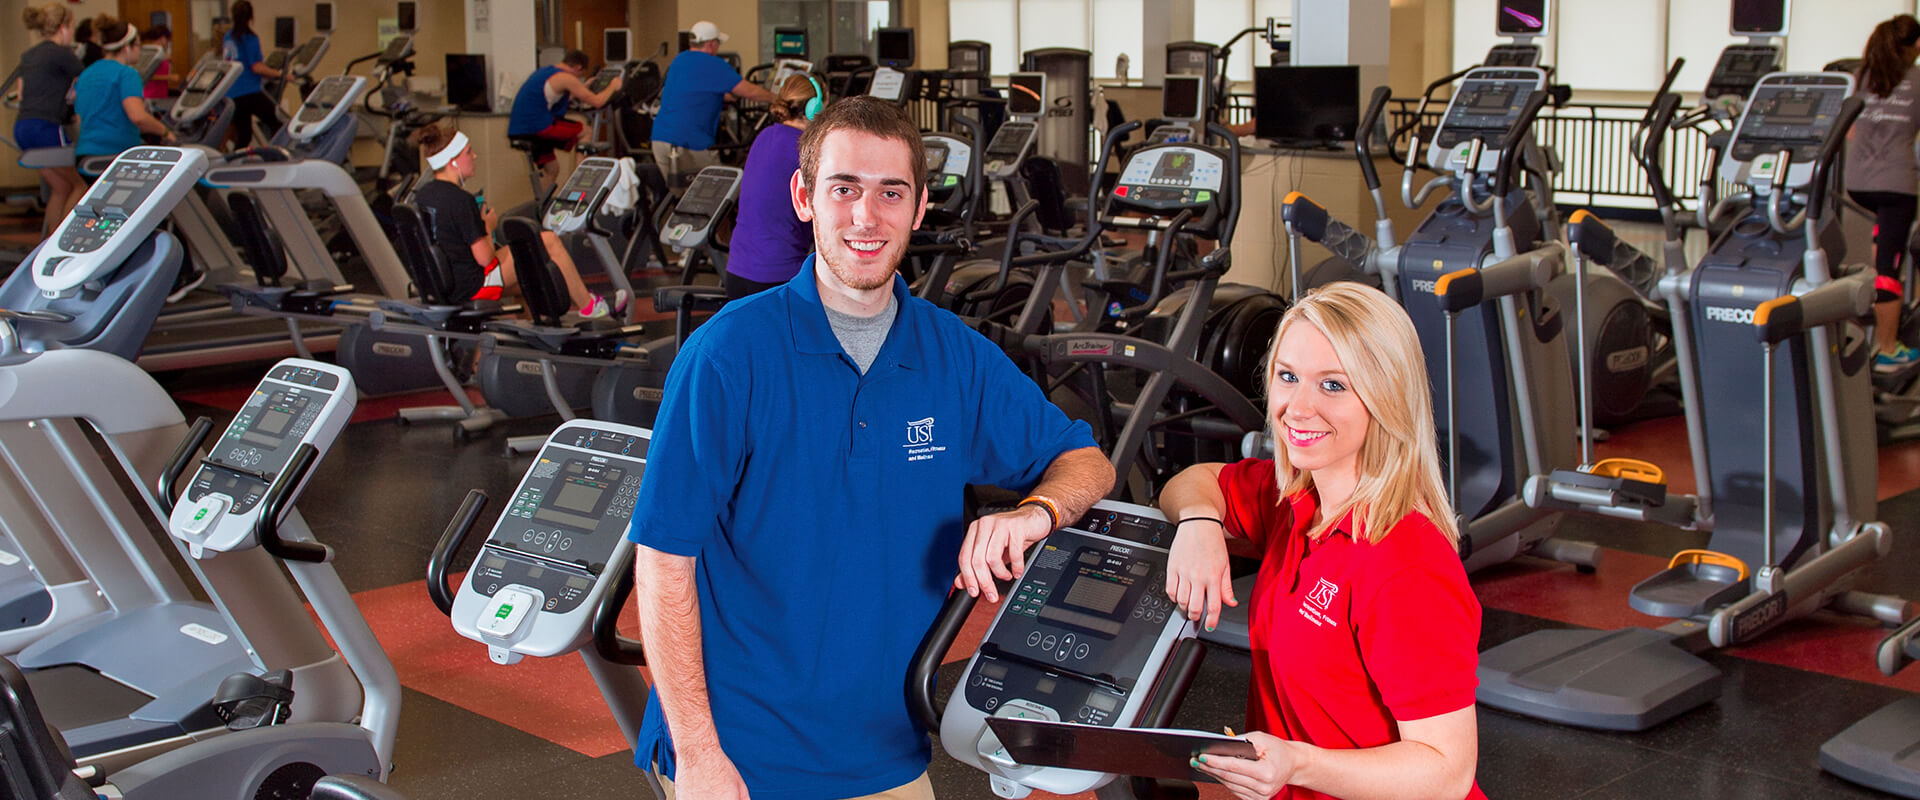 Two trainers standing in fitness center, leaning against treadmill